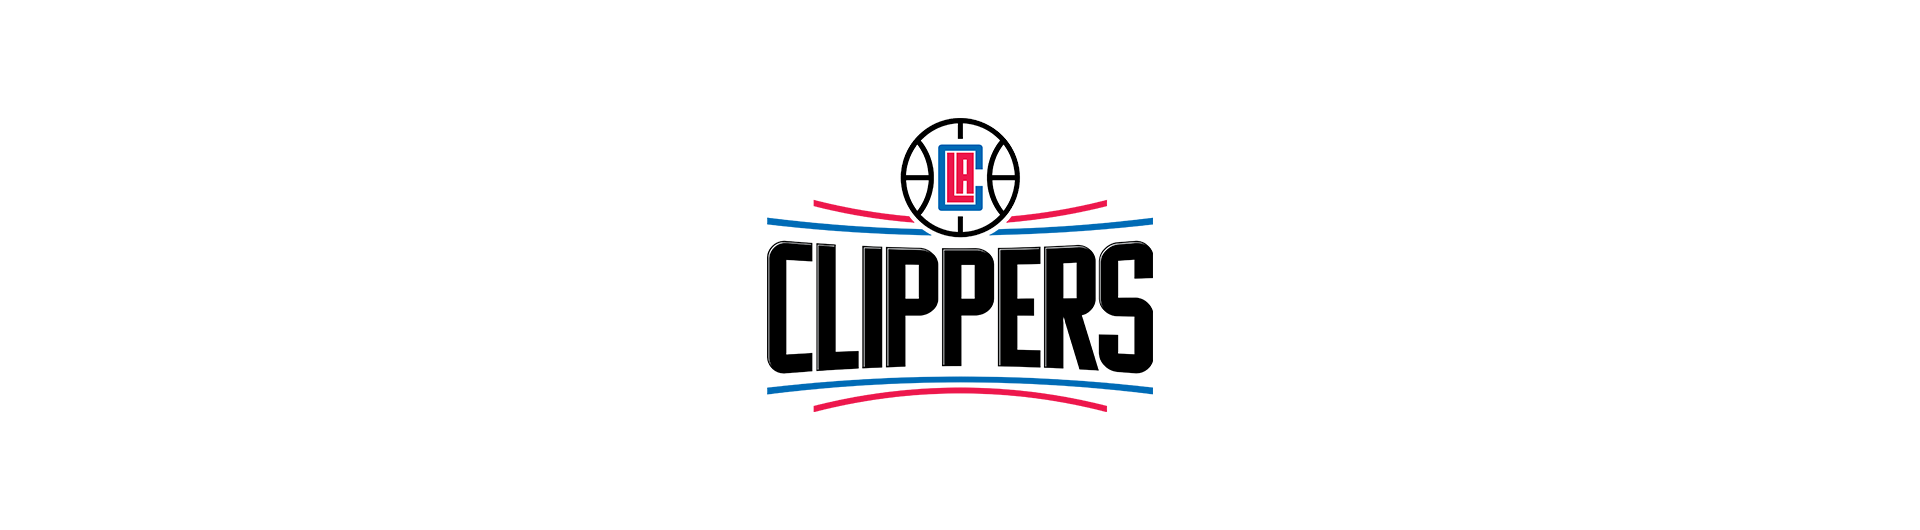 Los Angeles Clippers (LAC)